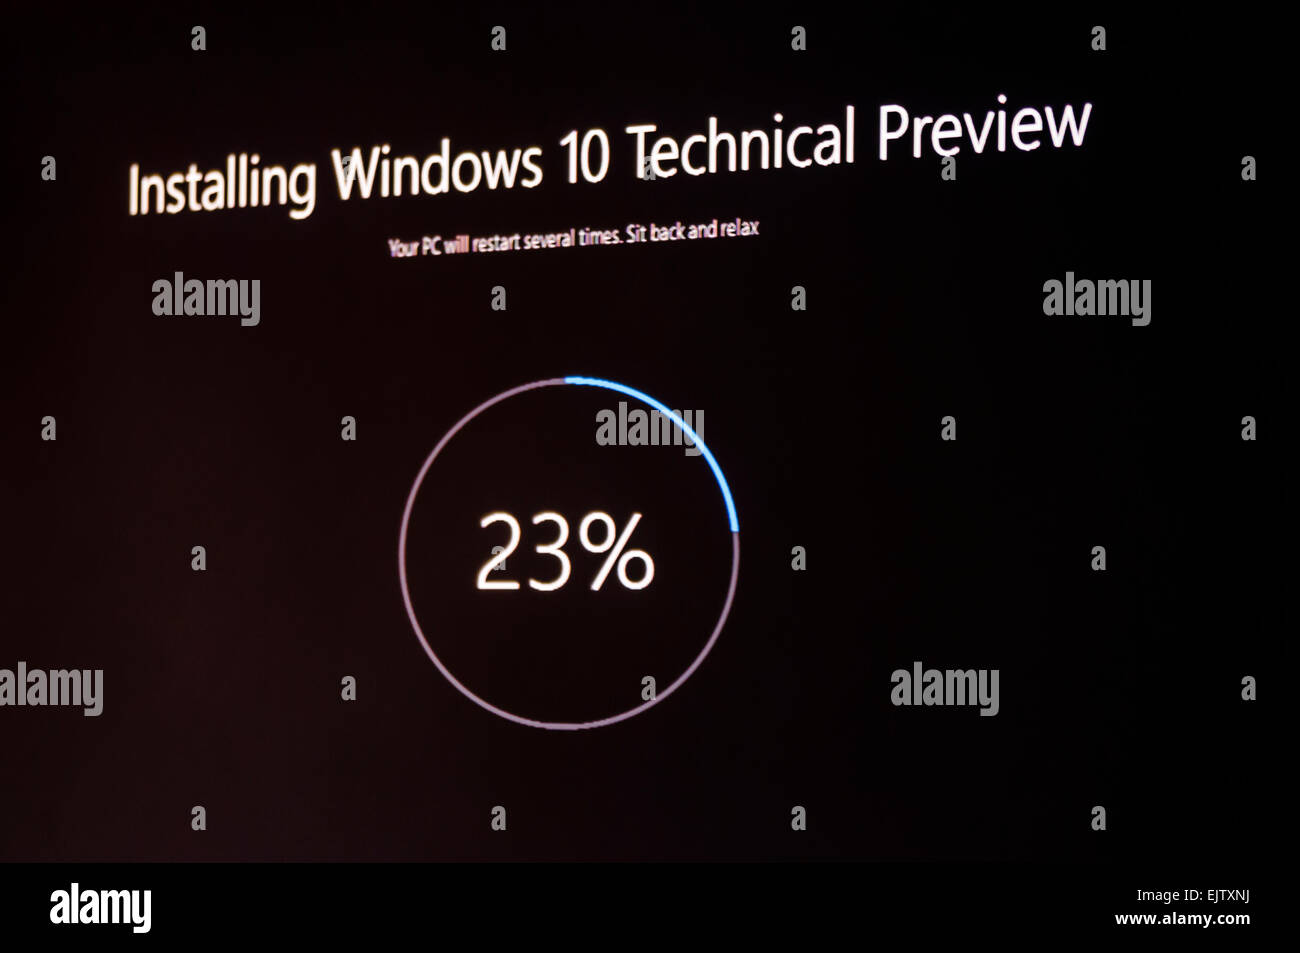 Installing Windows 10 Technical Preview, a public beta release. - Stock Image